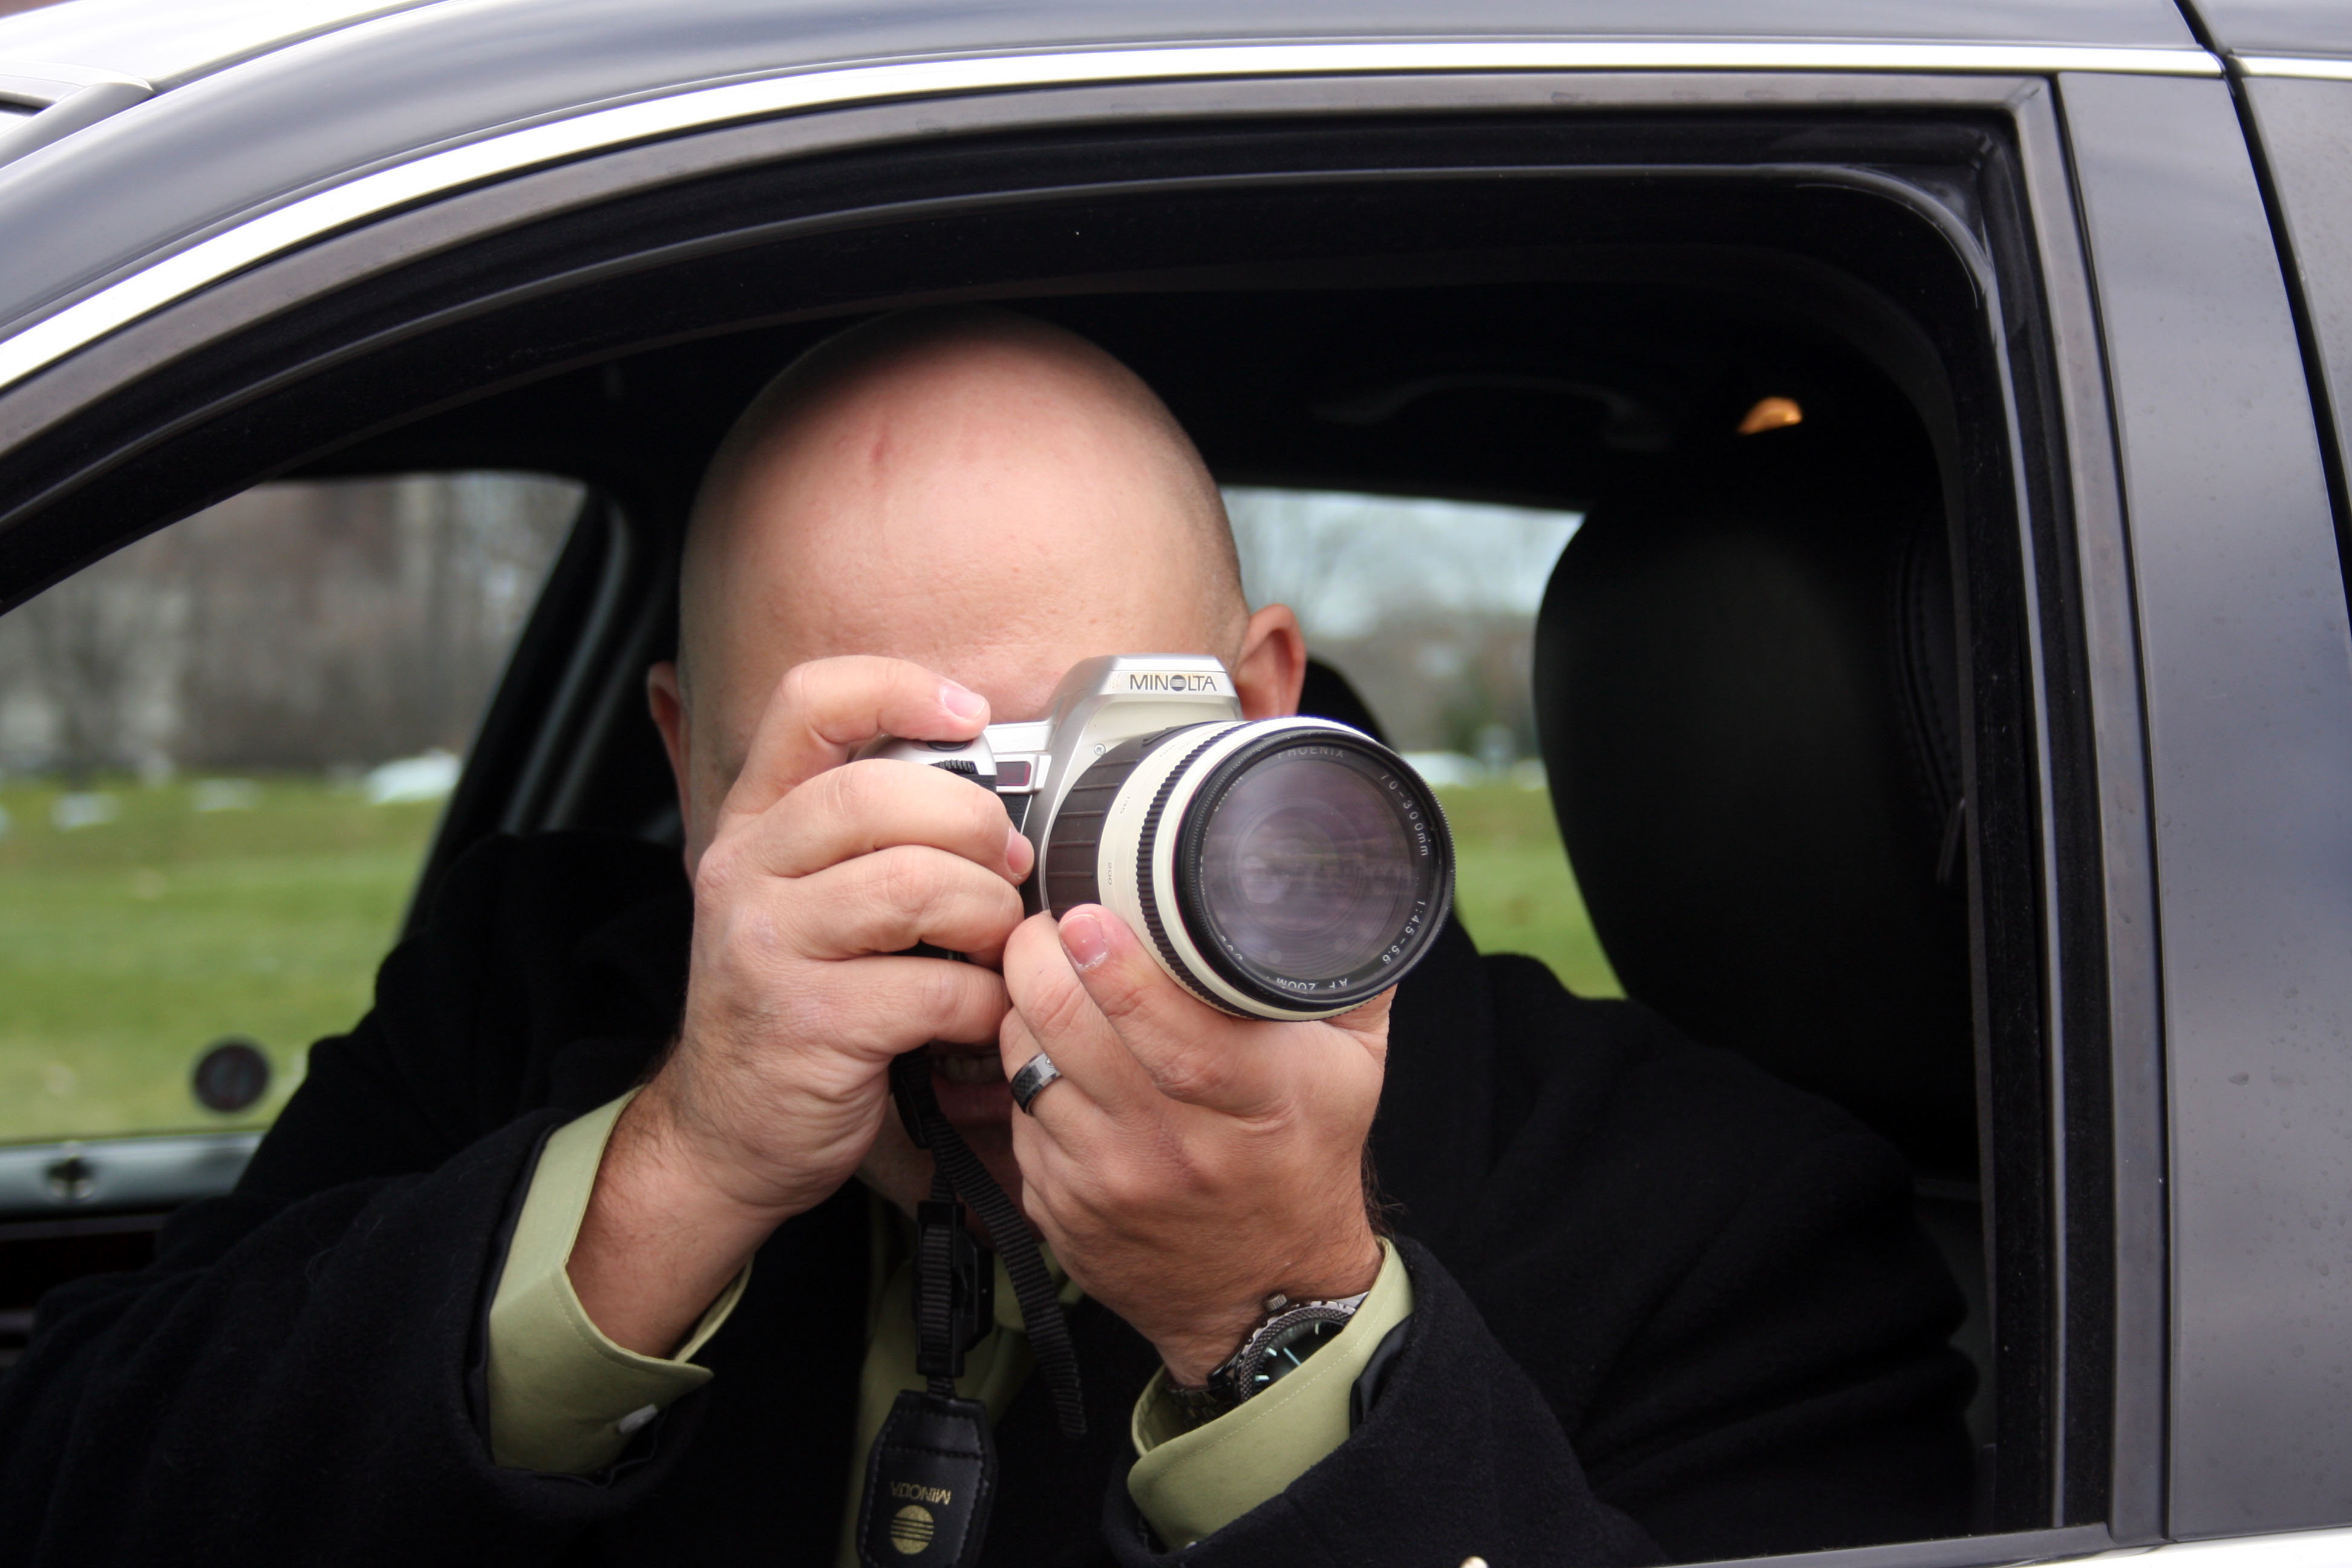 How to Find a Private Detective For Matrimonial Investigation